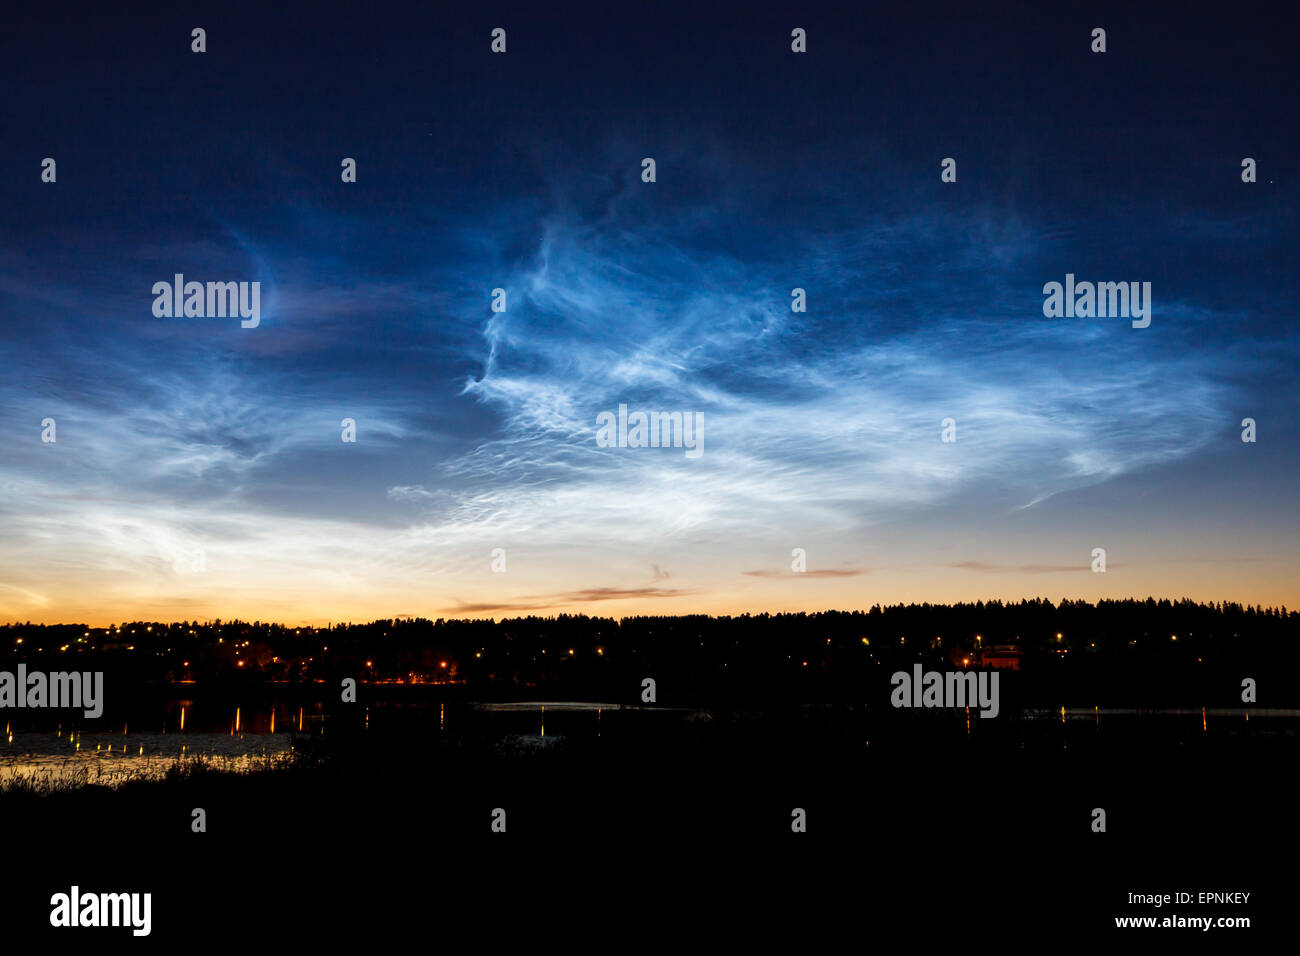 Beautiful sky phenomenon noctilucent clouds - Stock Image